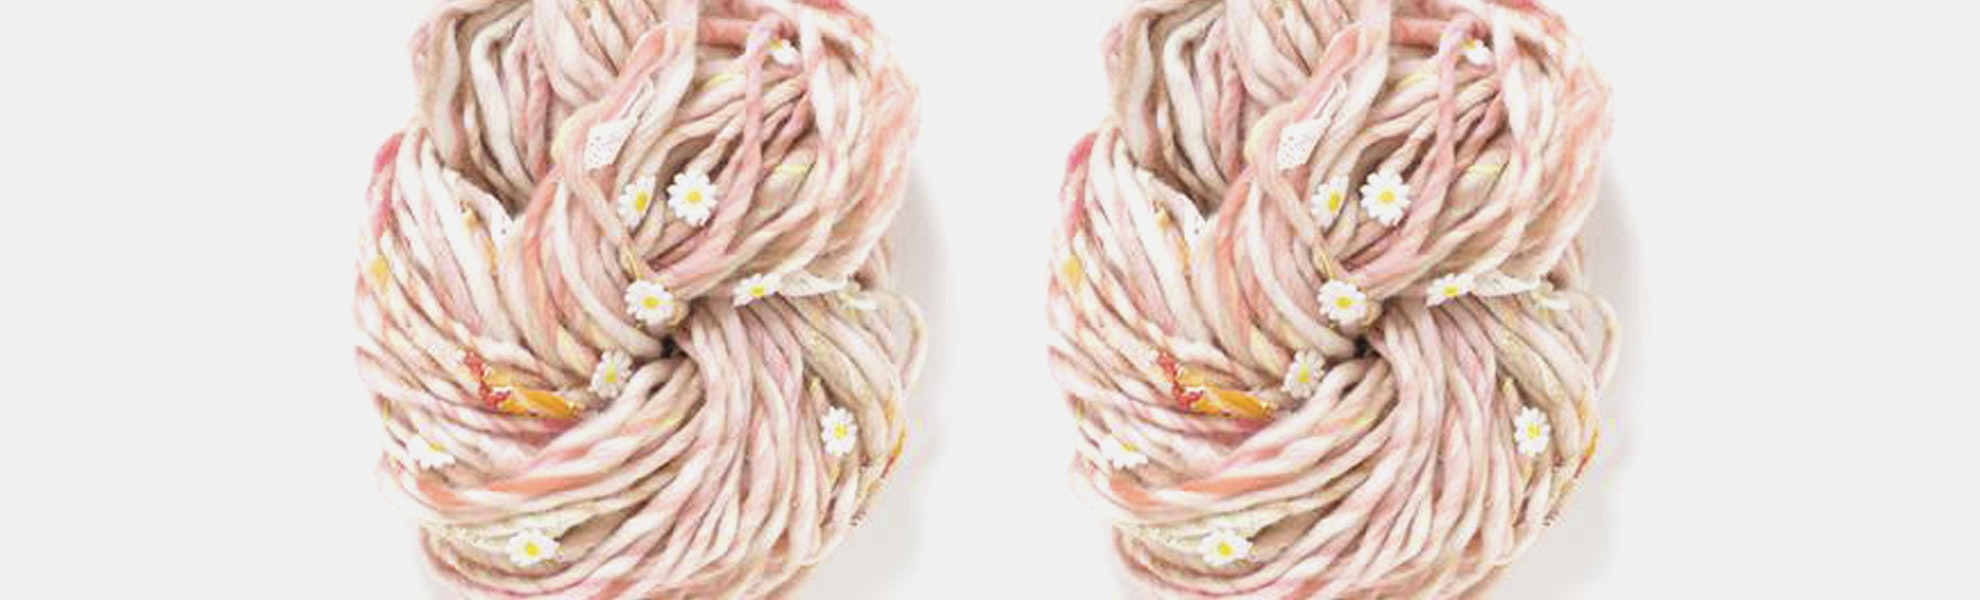 Daisy Chain Yarn by Knit Collage